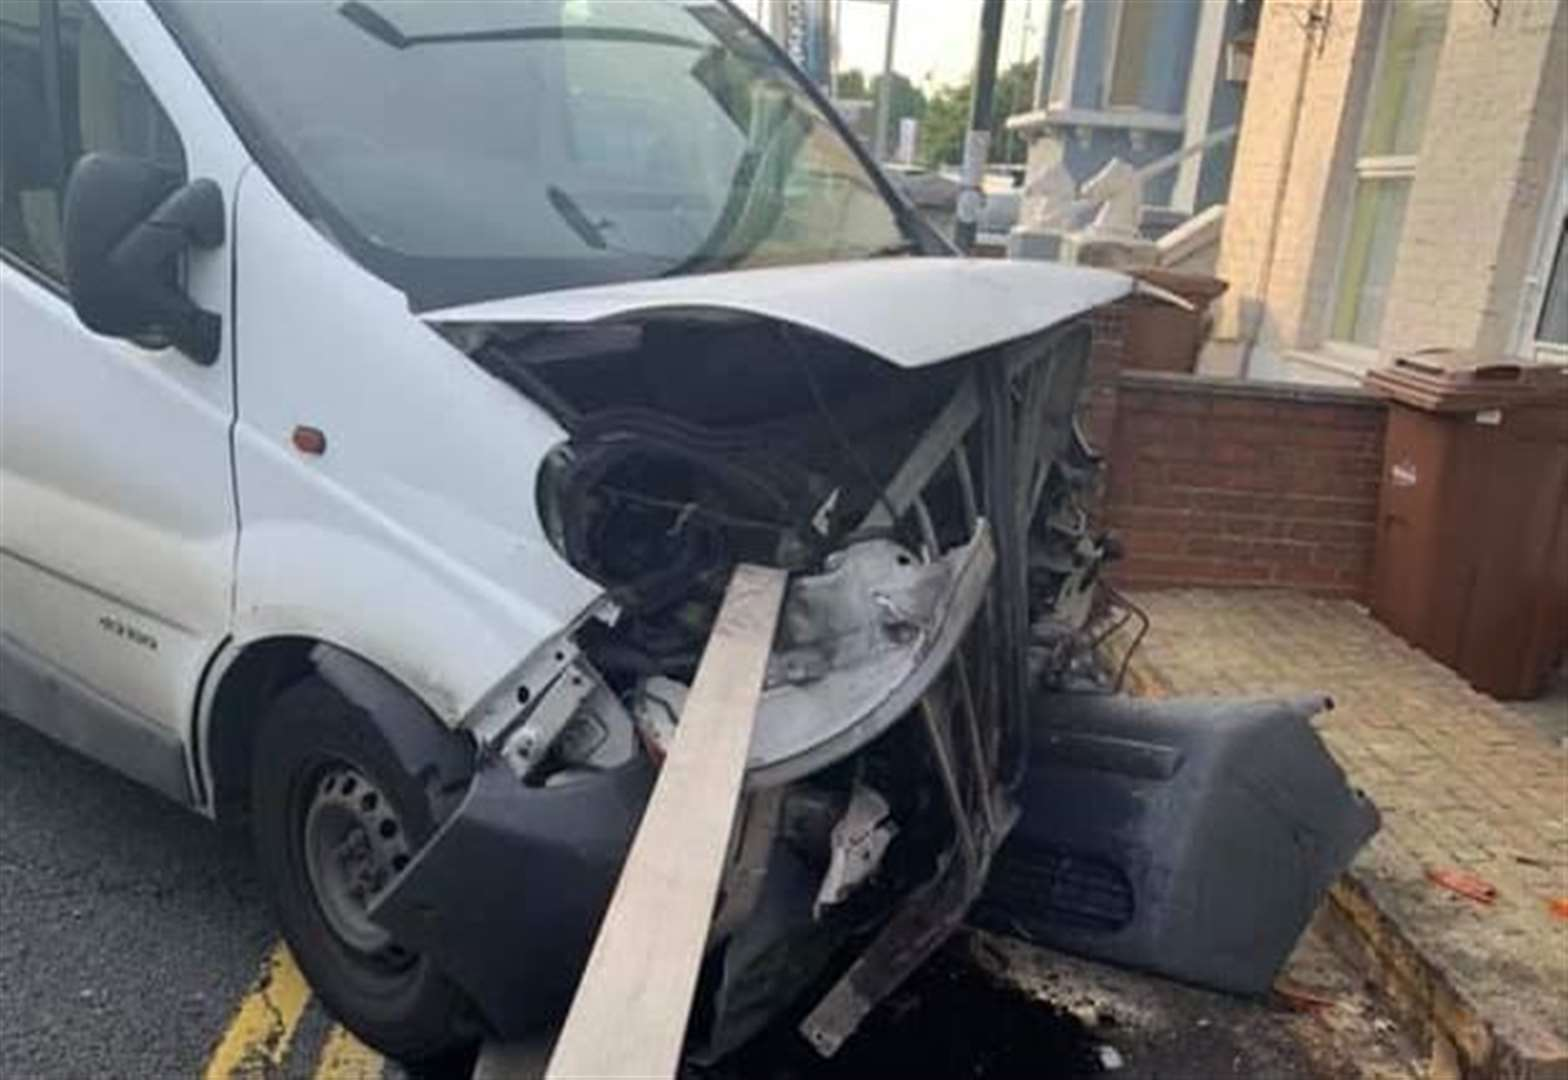 Van ruined after colliding with a fence